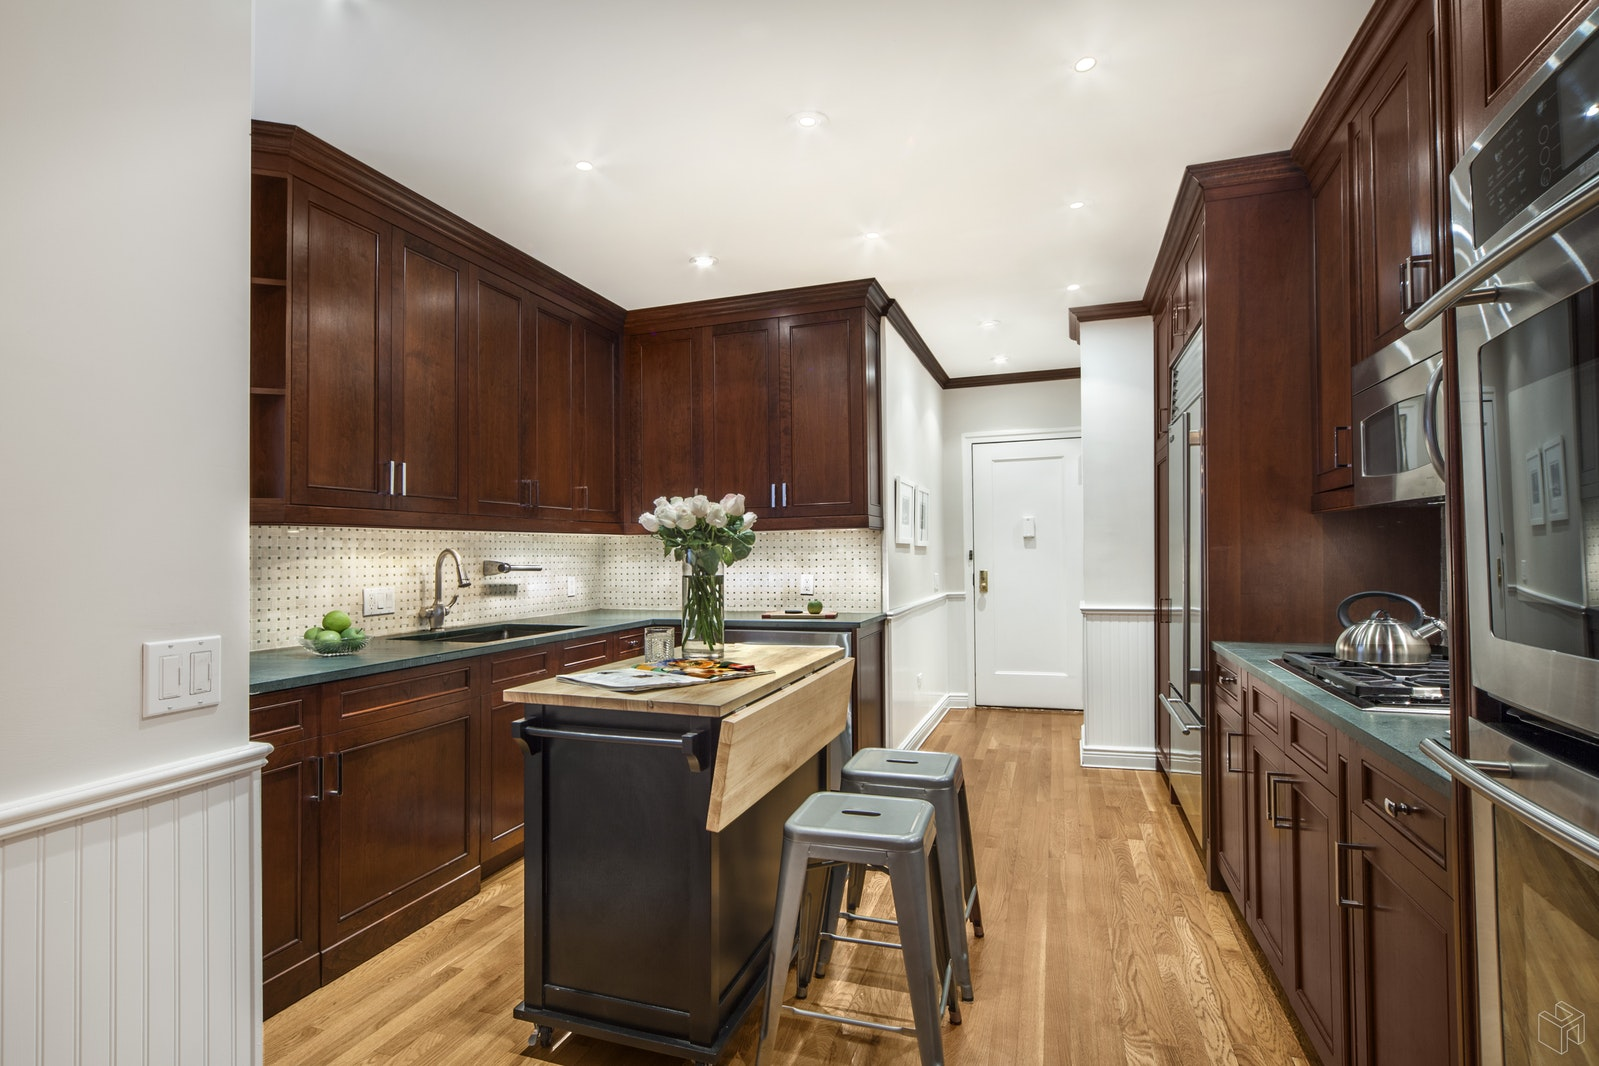 180 RIVERSIDE DRIVE 3E, Upper West Side, $2,275,000, Web #: 19101718